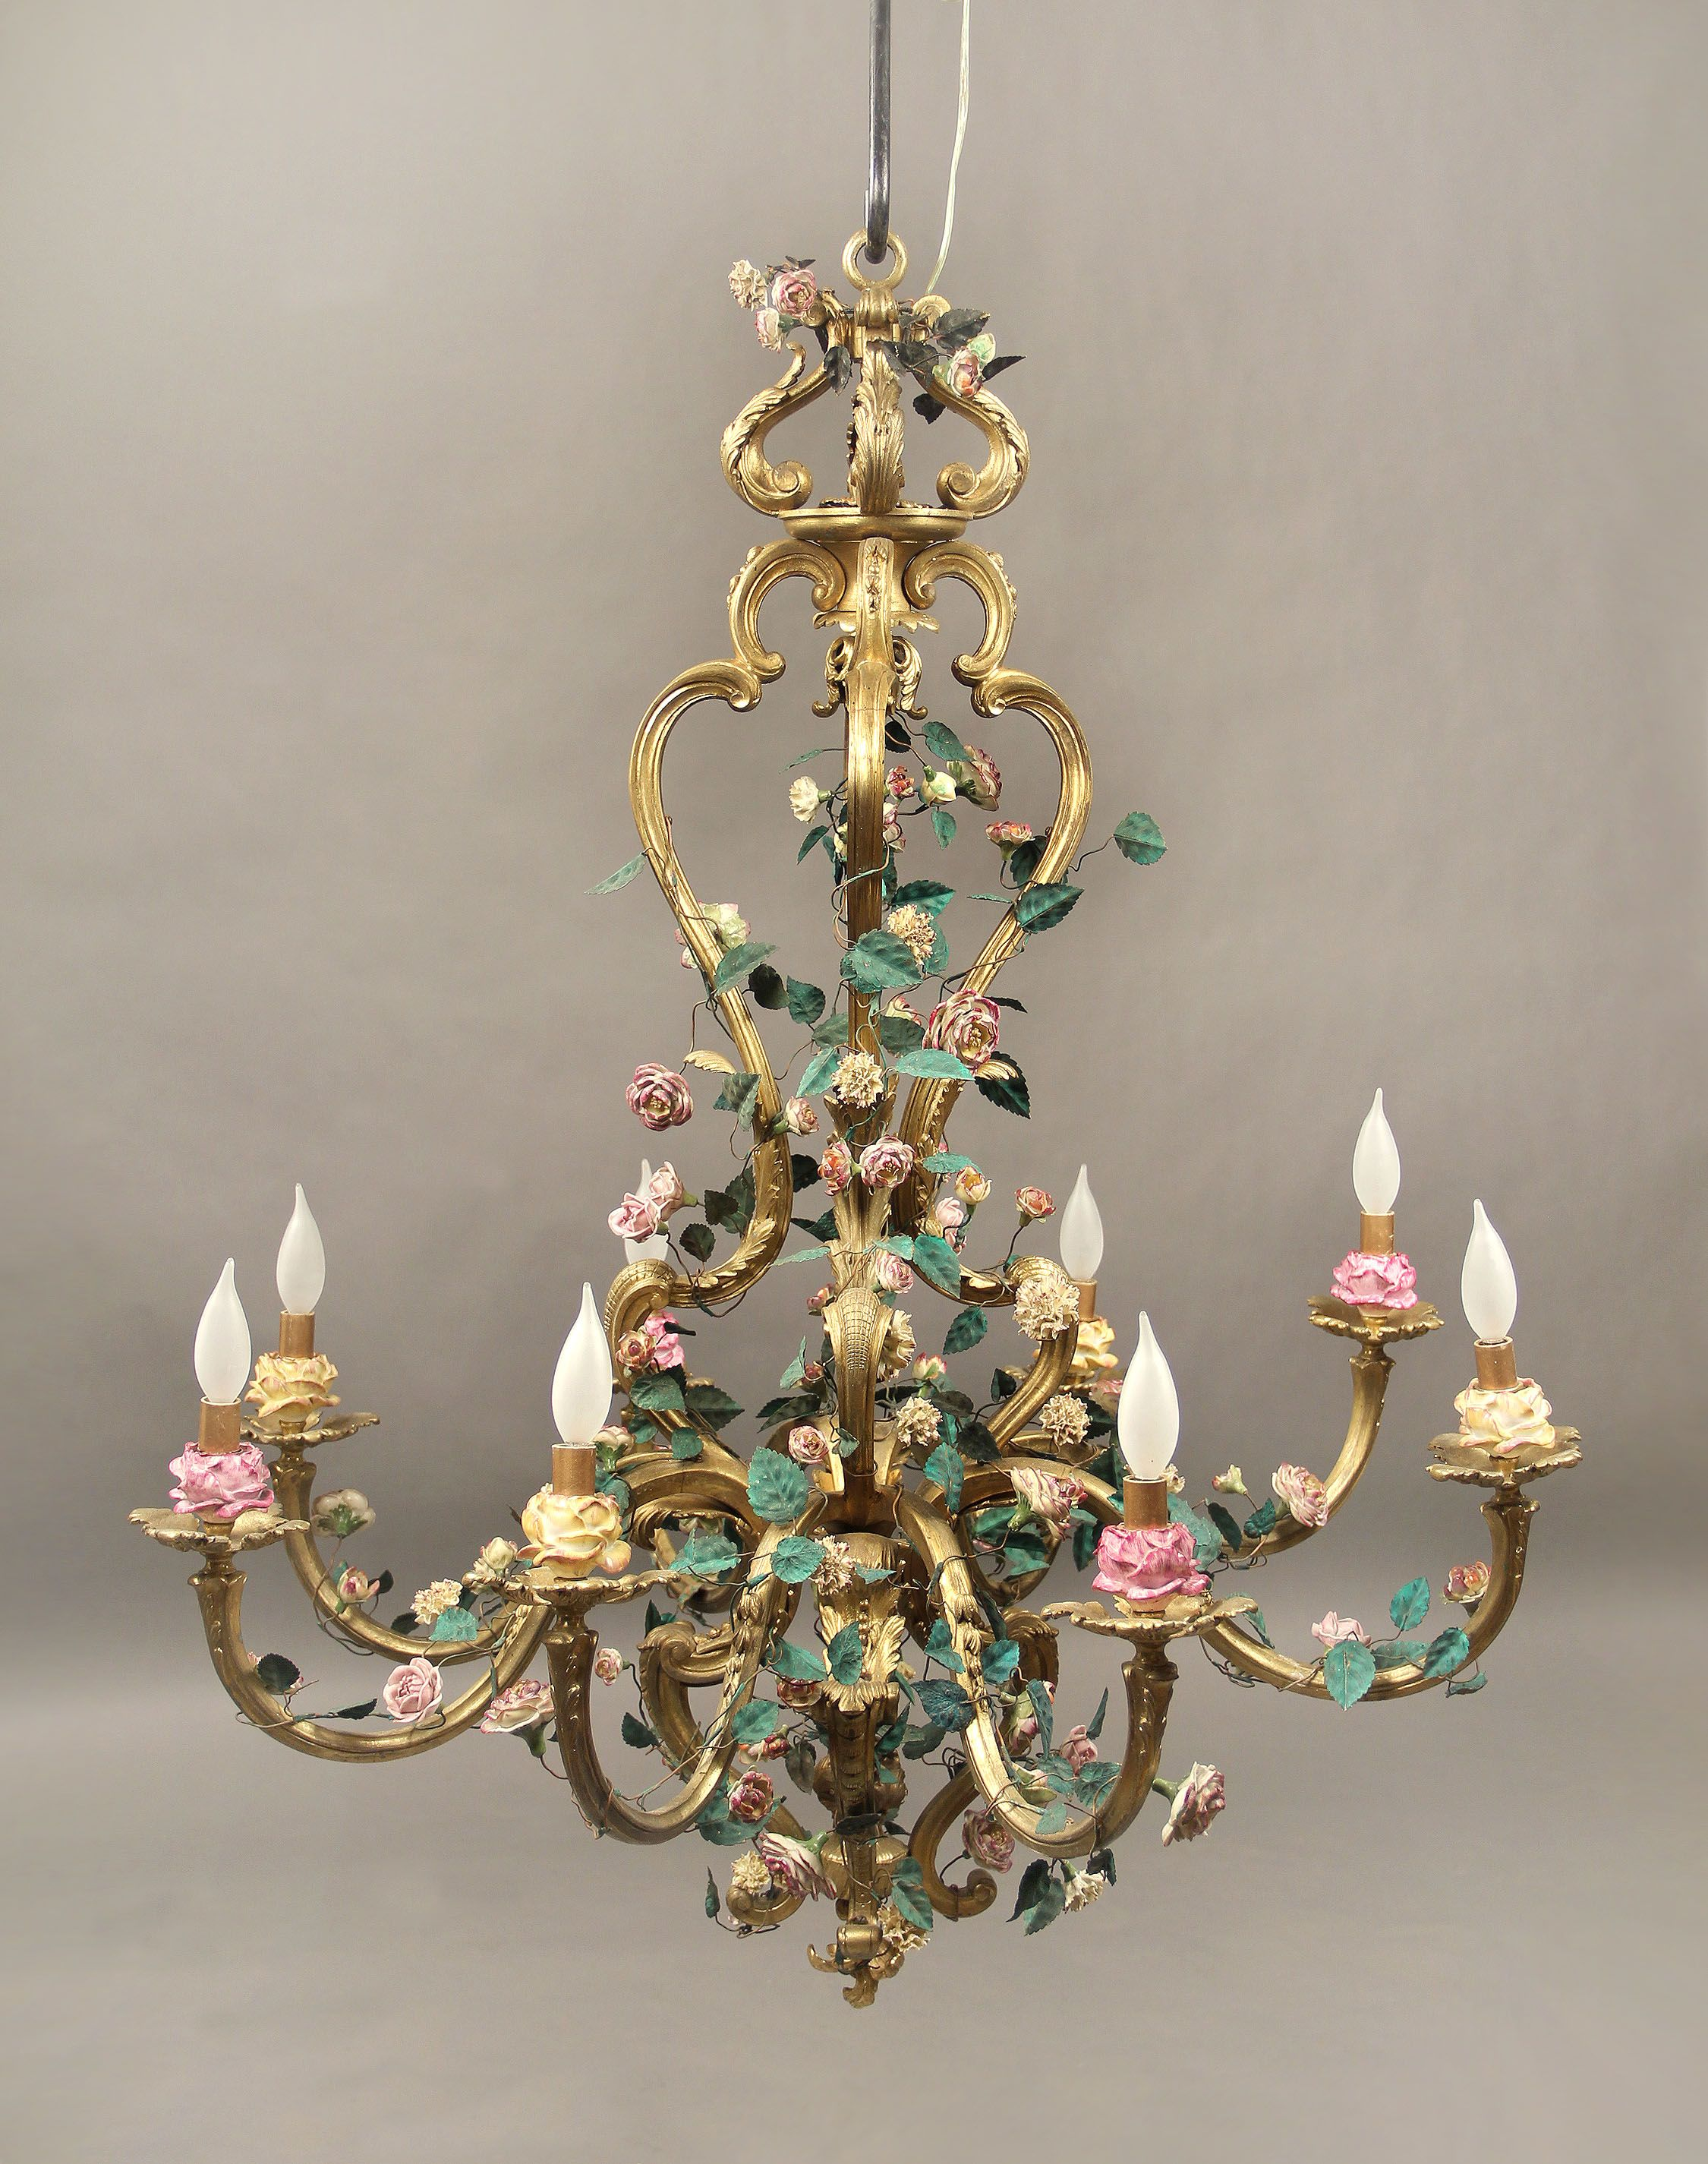 A Late 19th Century Gilt Bronze and French Porcelain Rococo